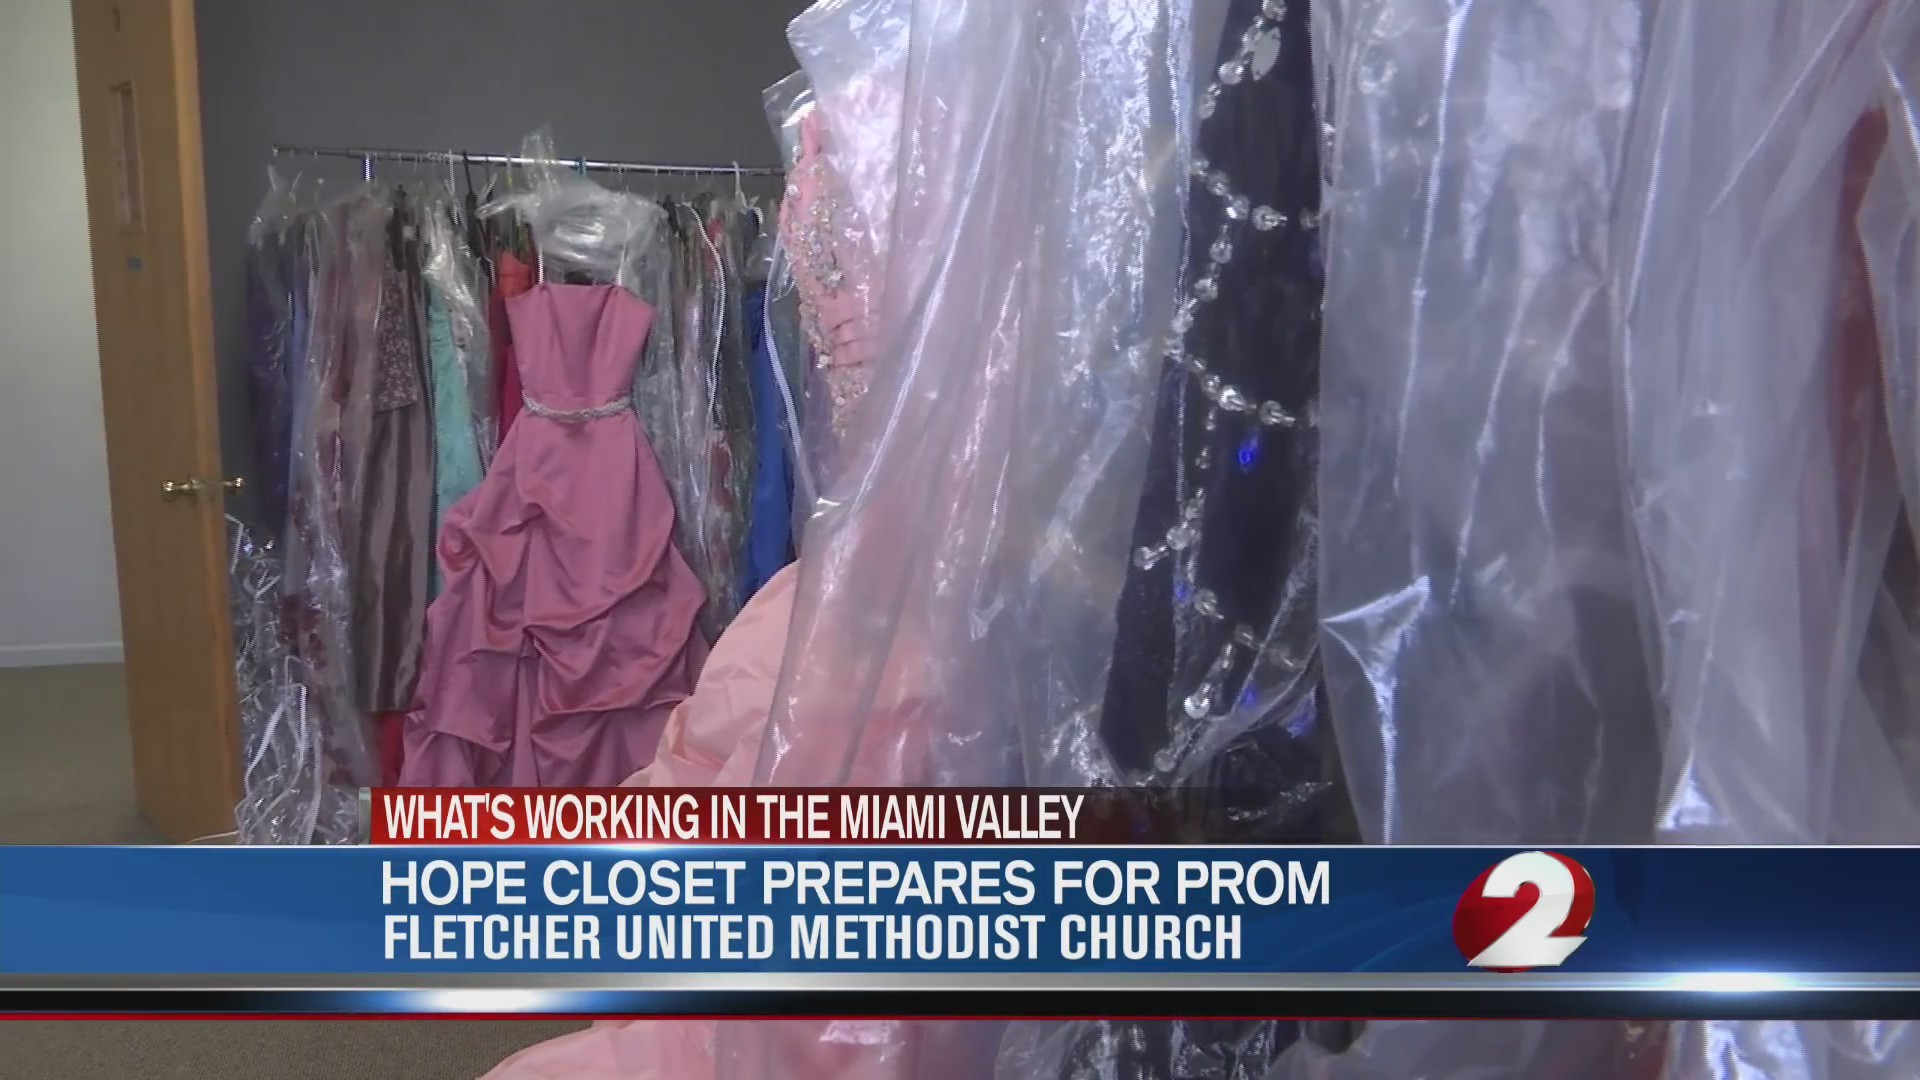 Hope Closet prepares for prom